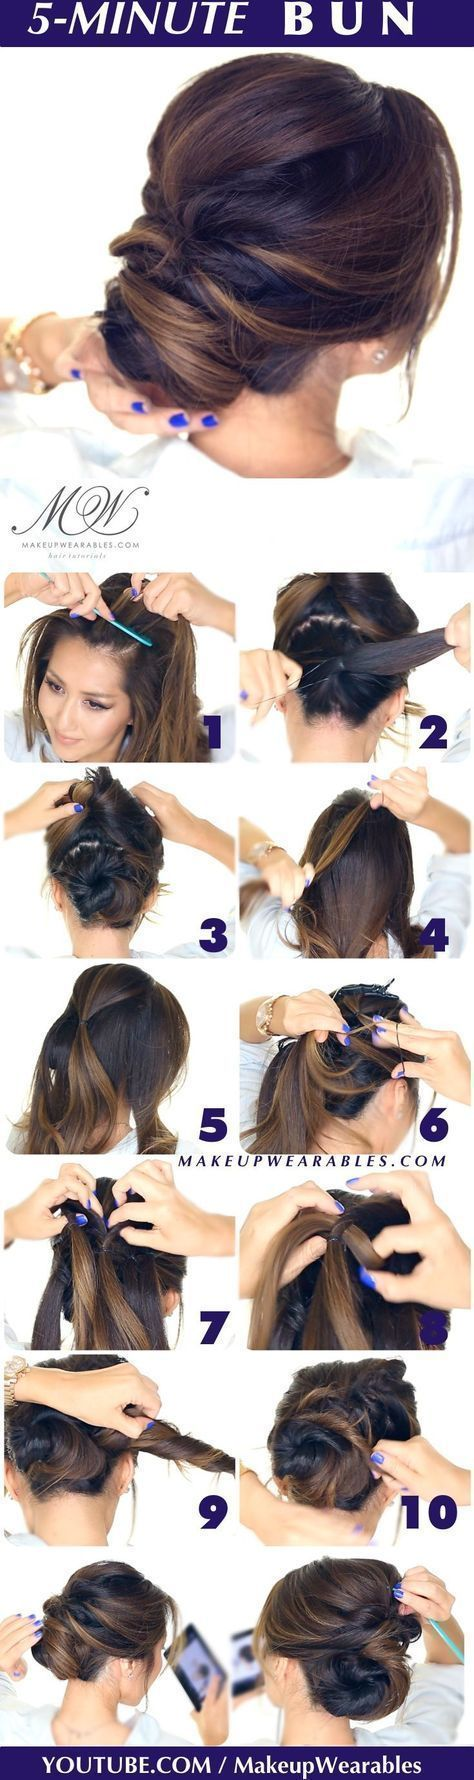 hair tutorial  easy romantic bun hairstyle  Elegant twisted bun hairstyles for h... -